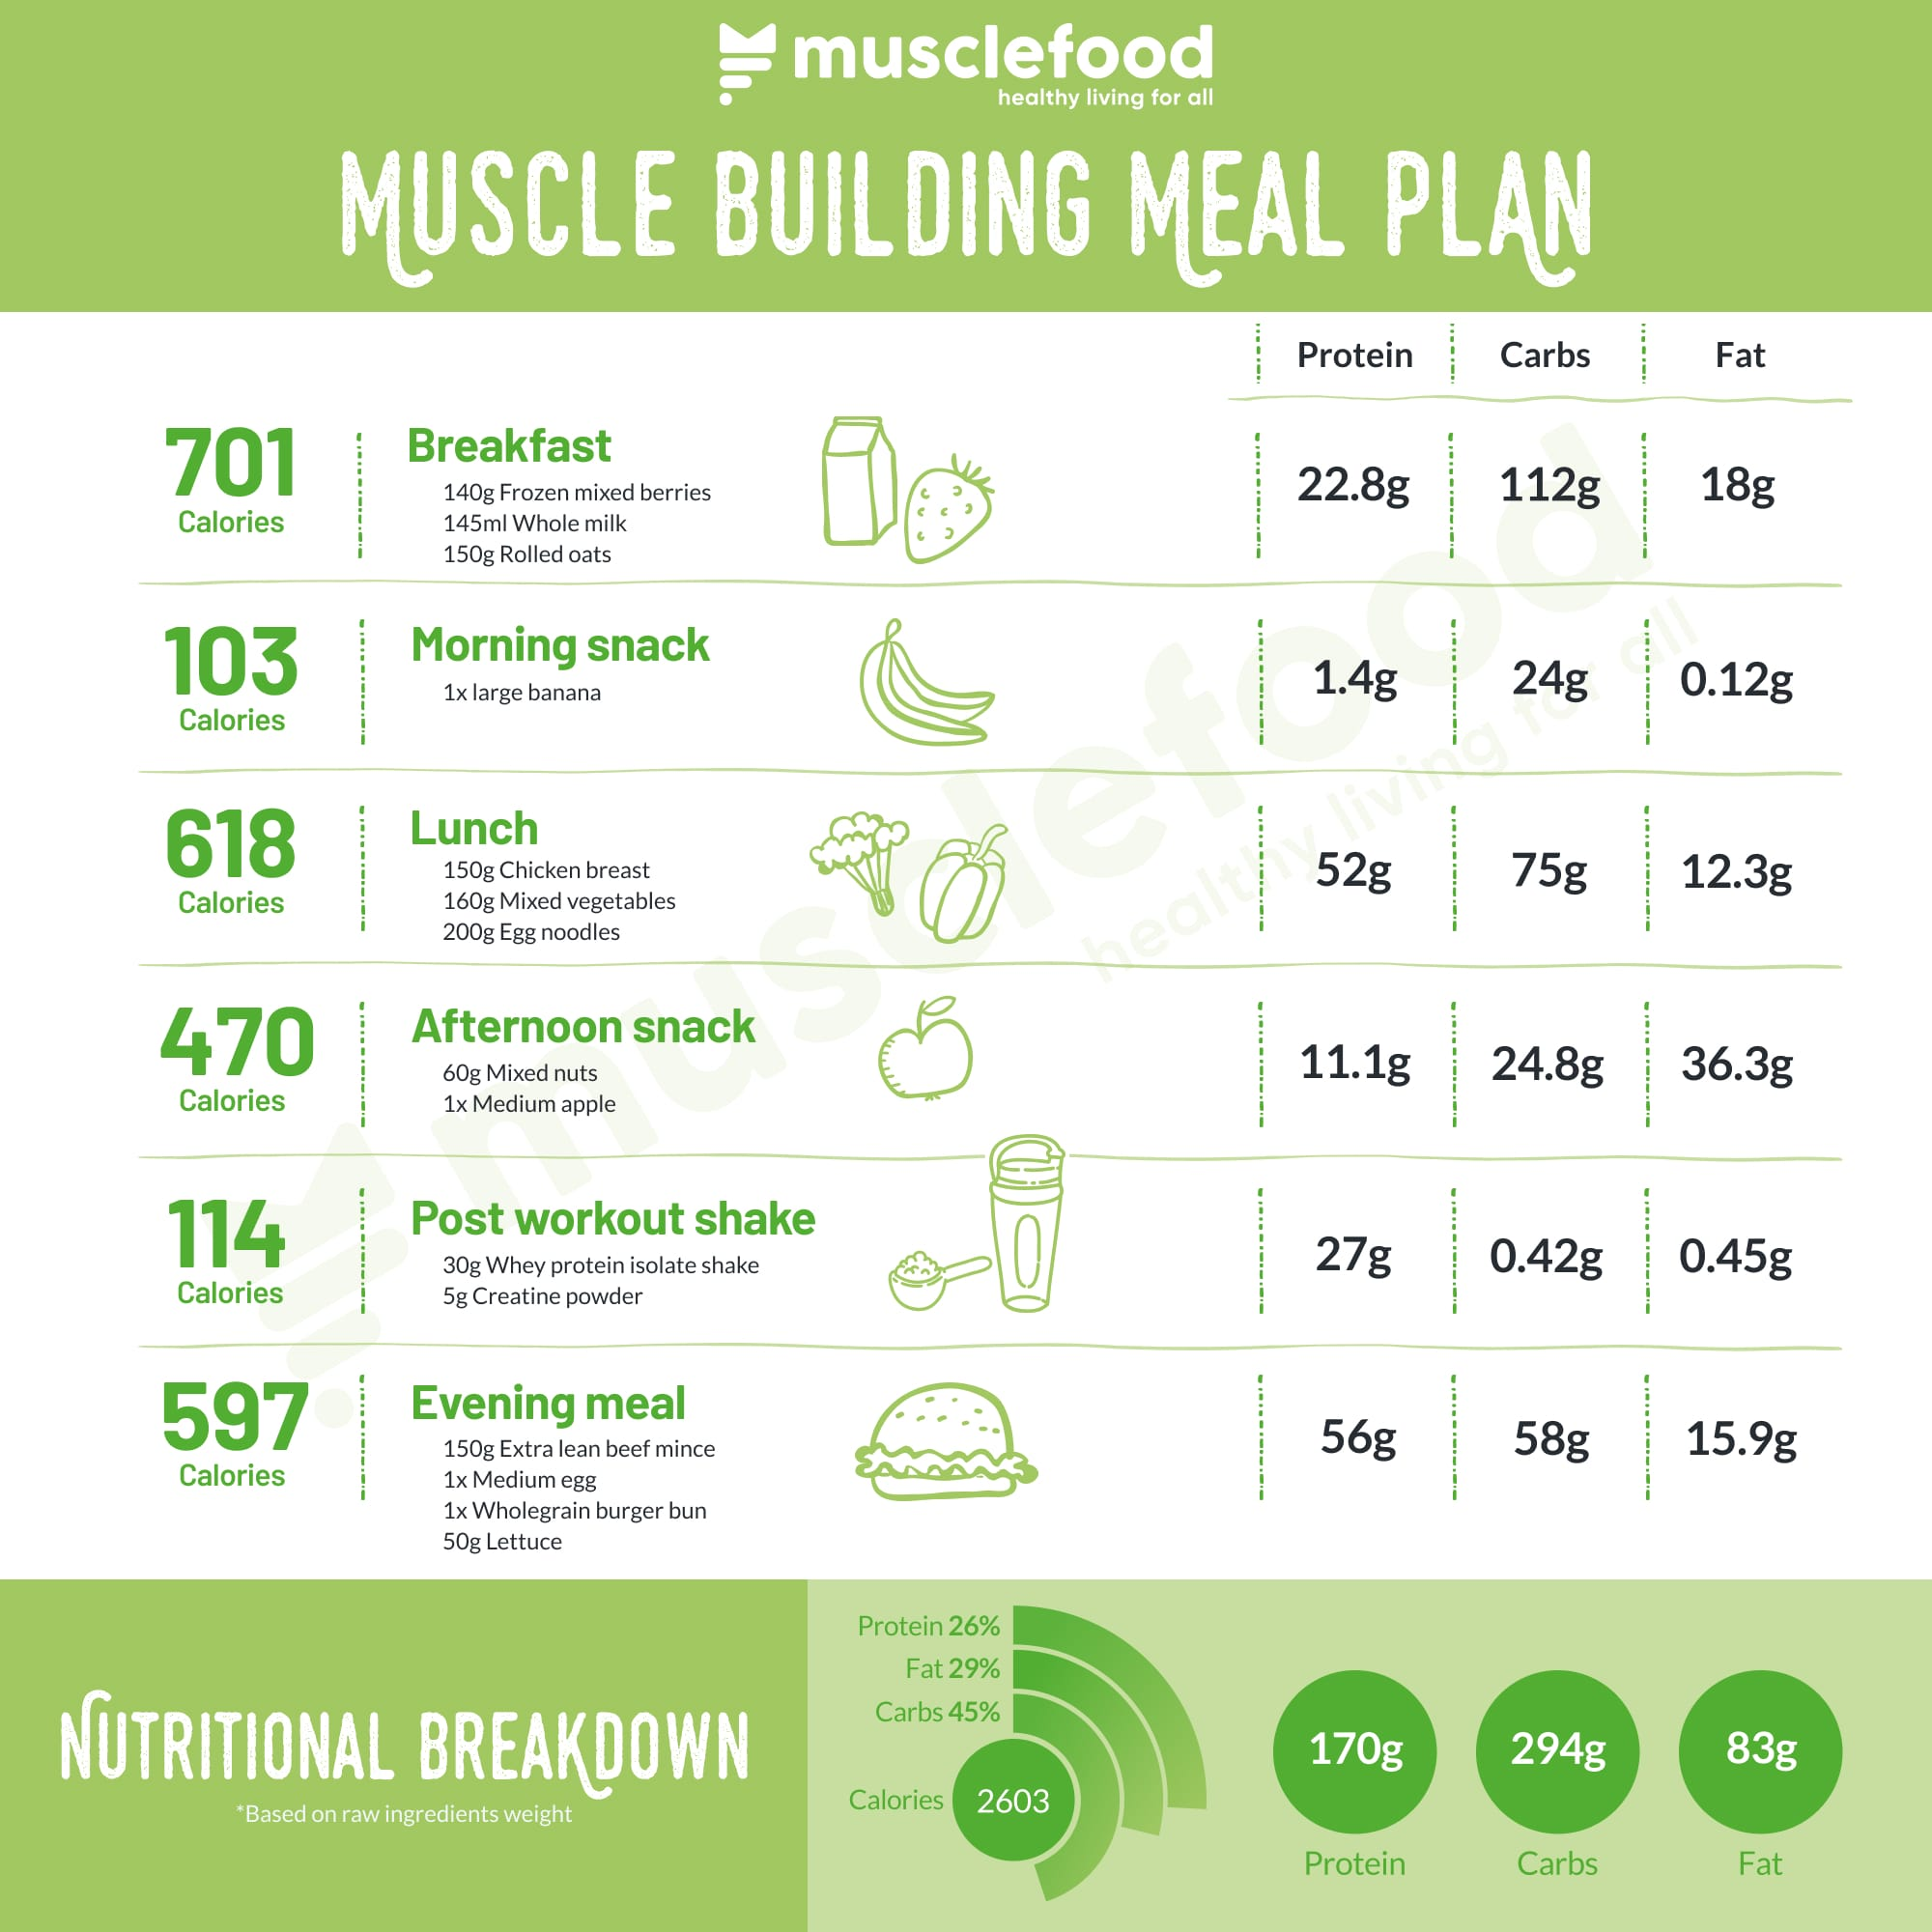 The ultimate muscle building meal plan 💪 | musclefood